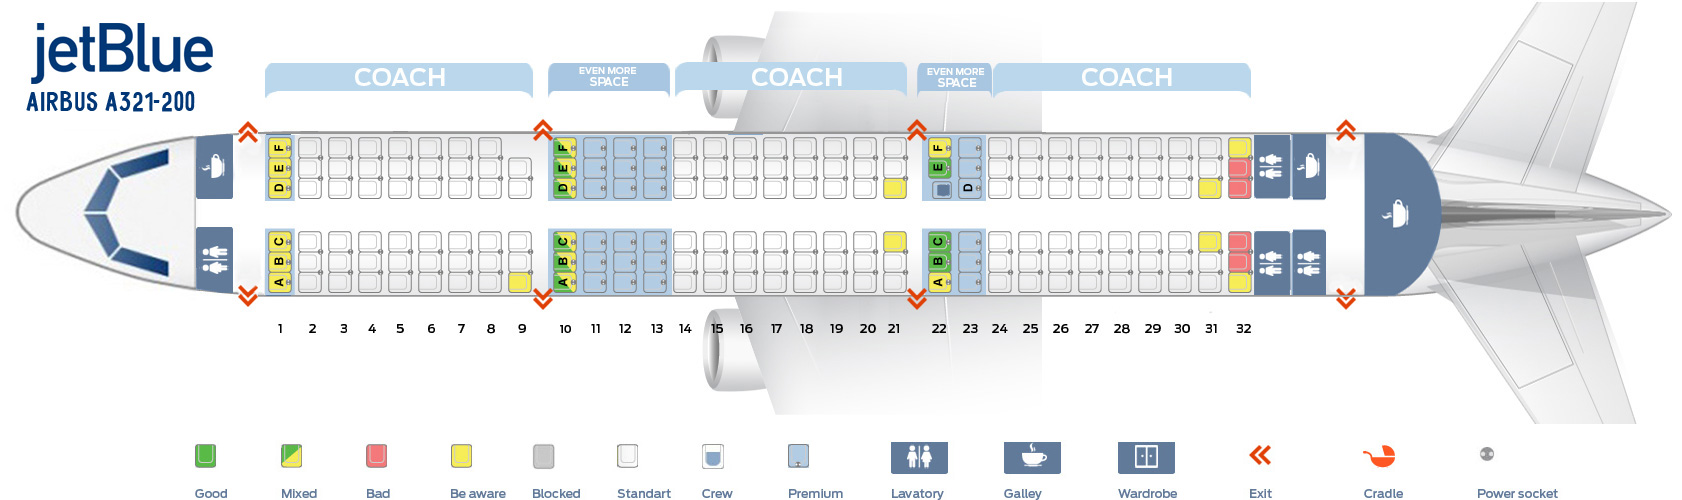 Jetblue seat chart hobit fullring co